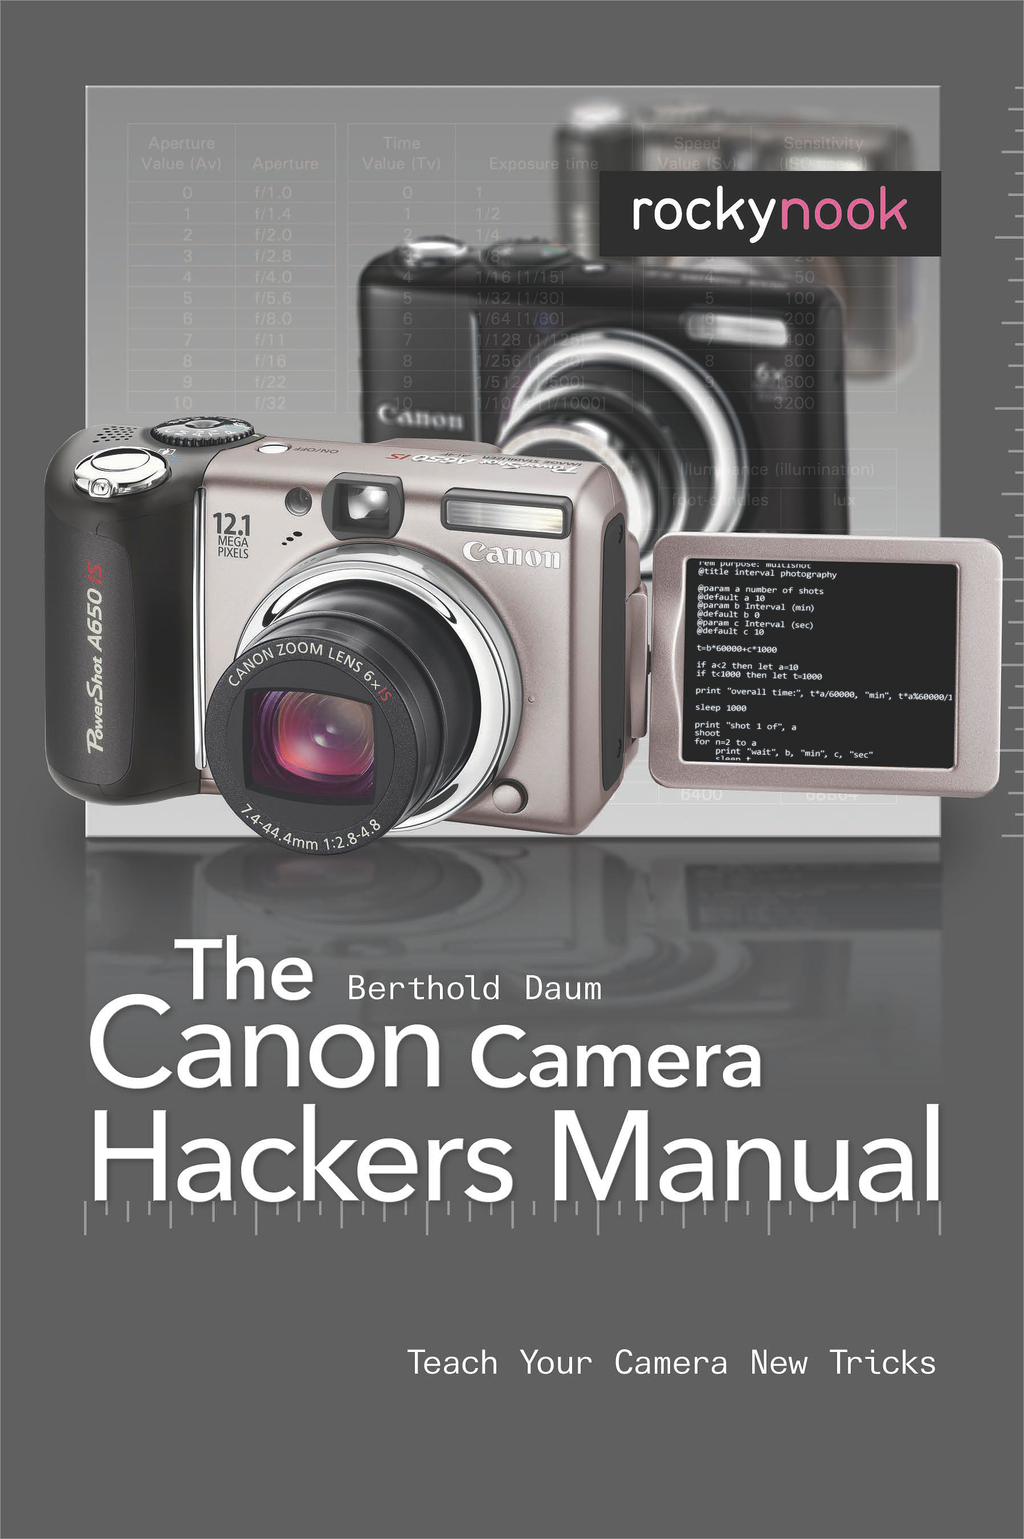 The Canon Camera Hackers Manual By: Berthold Daum